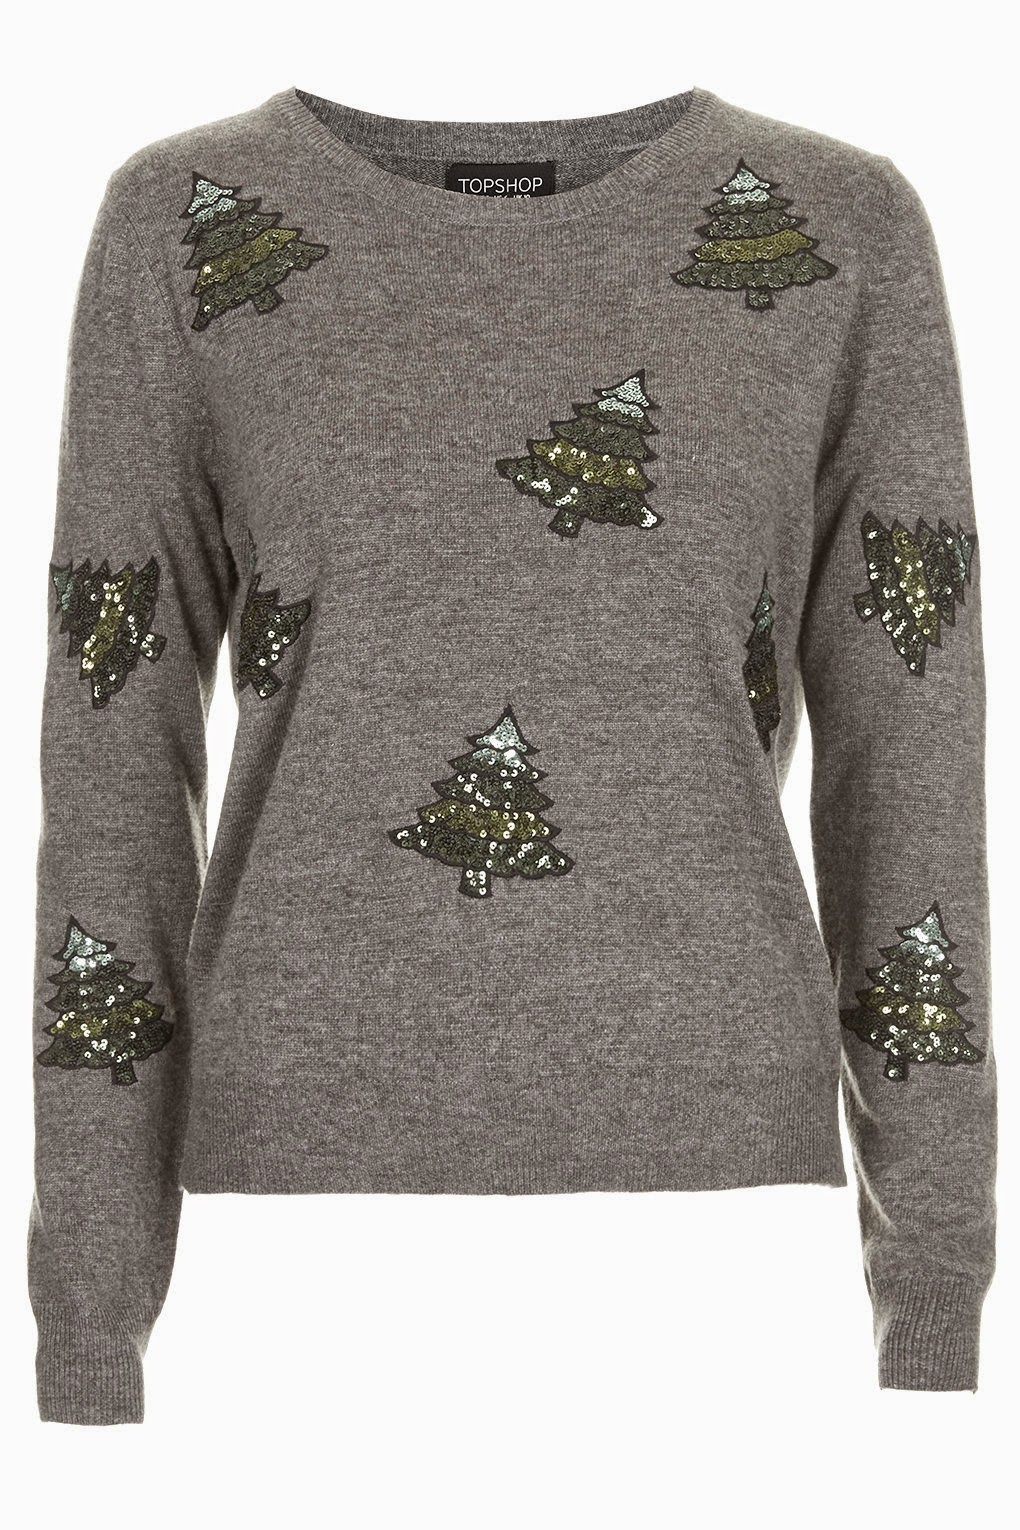 Which Christmas Jumper Shall You Wear? Here's Our Top Picks...